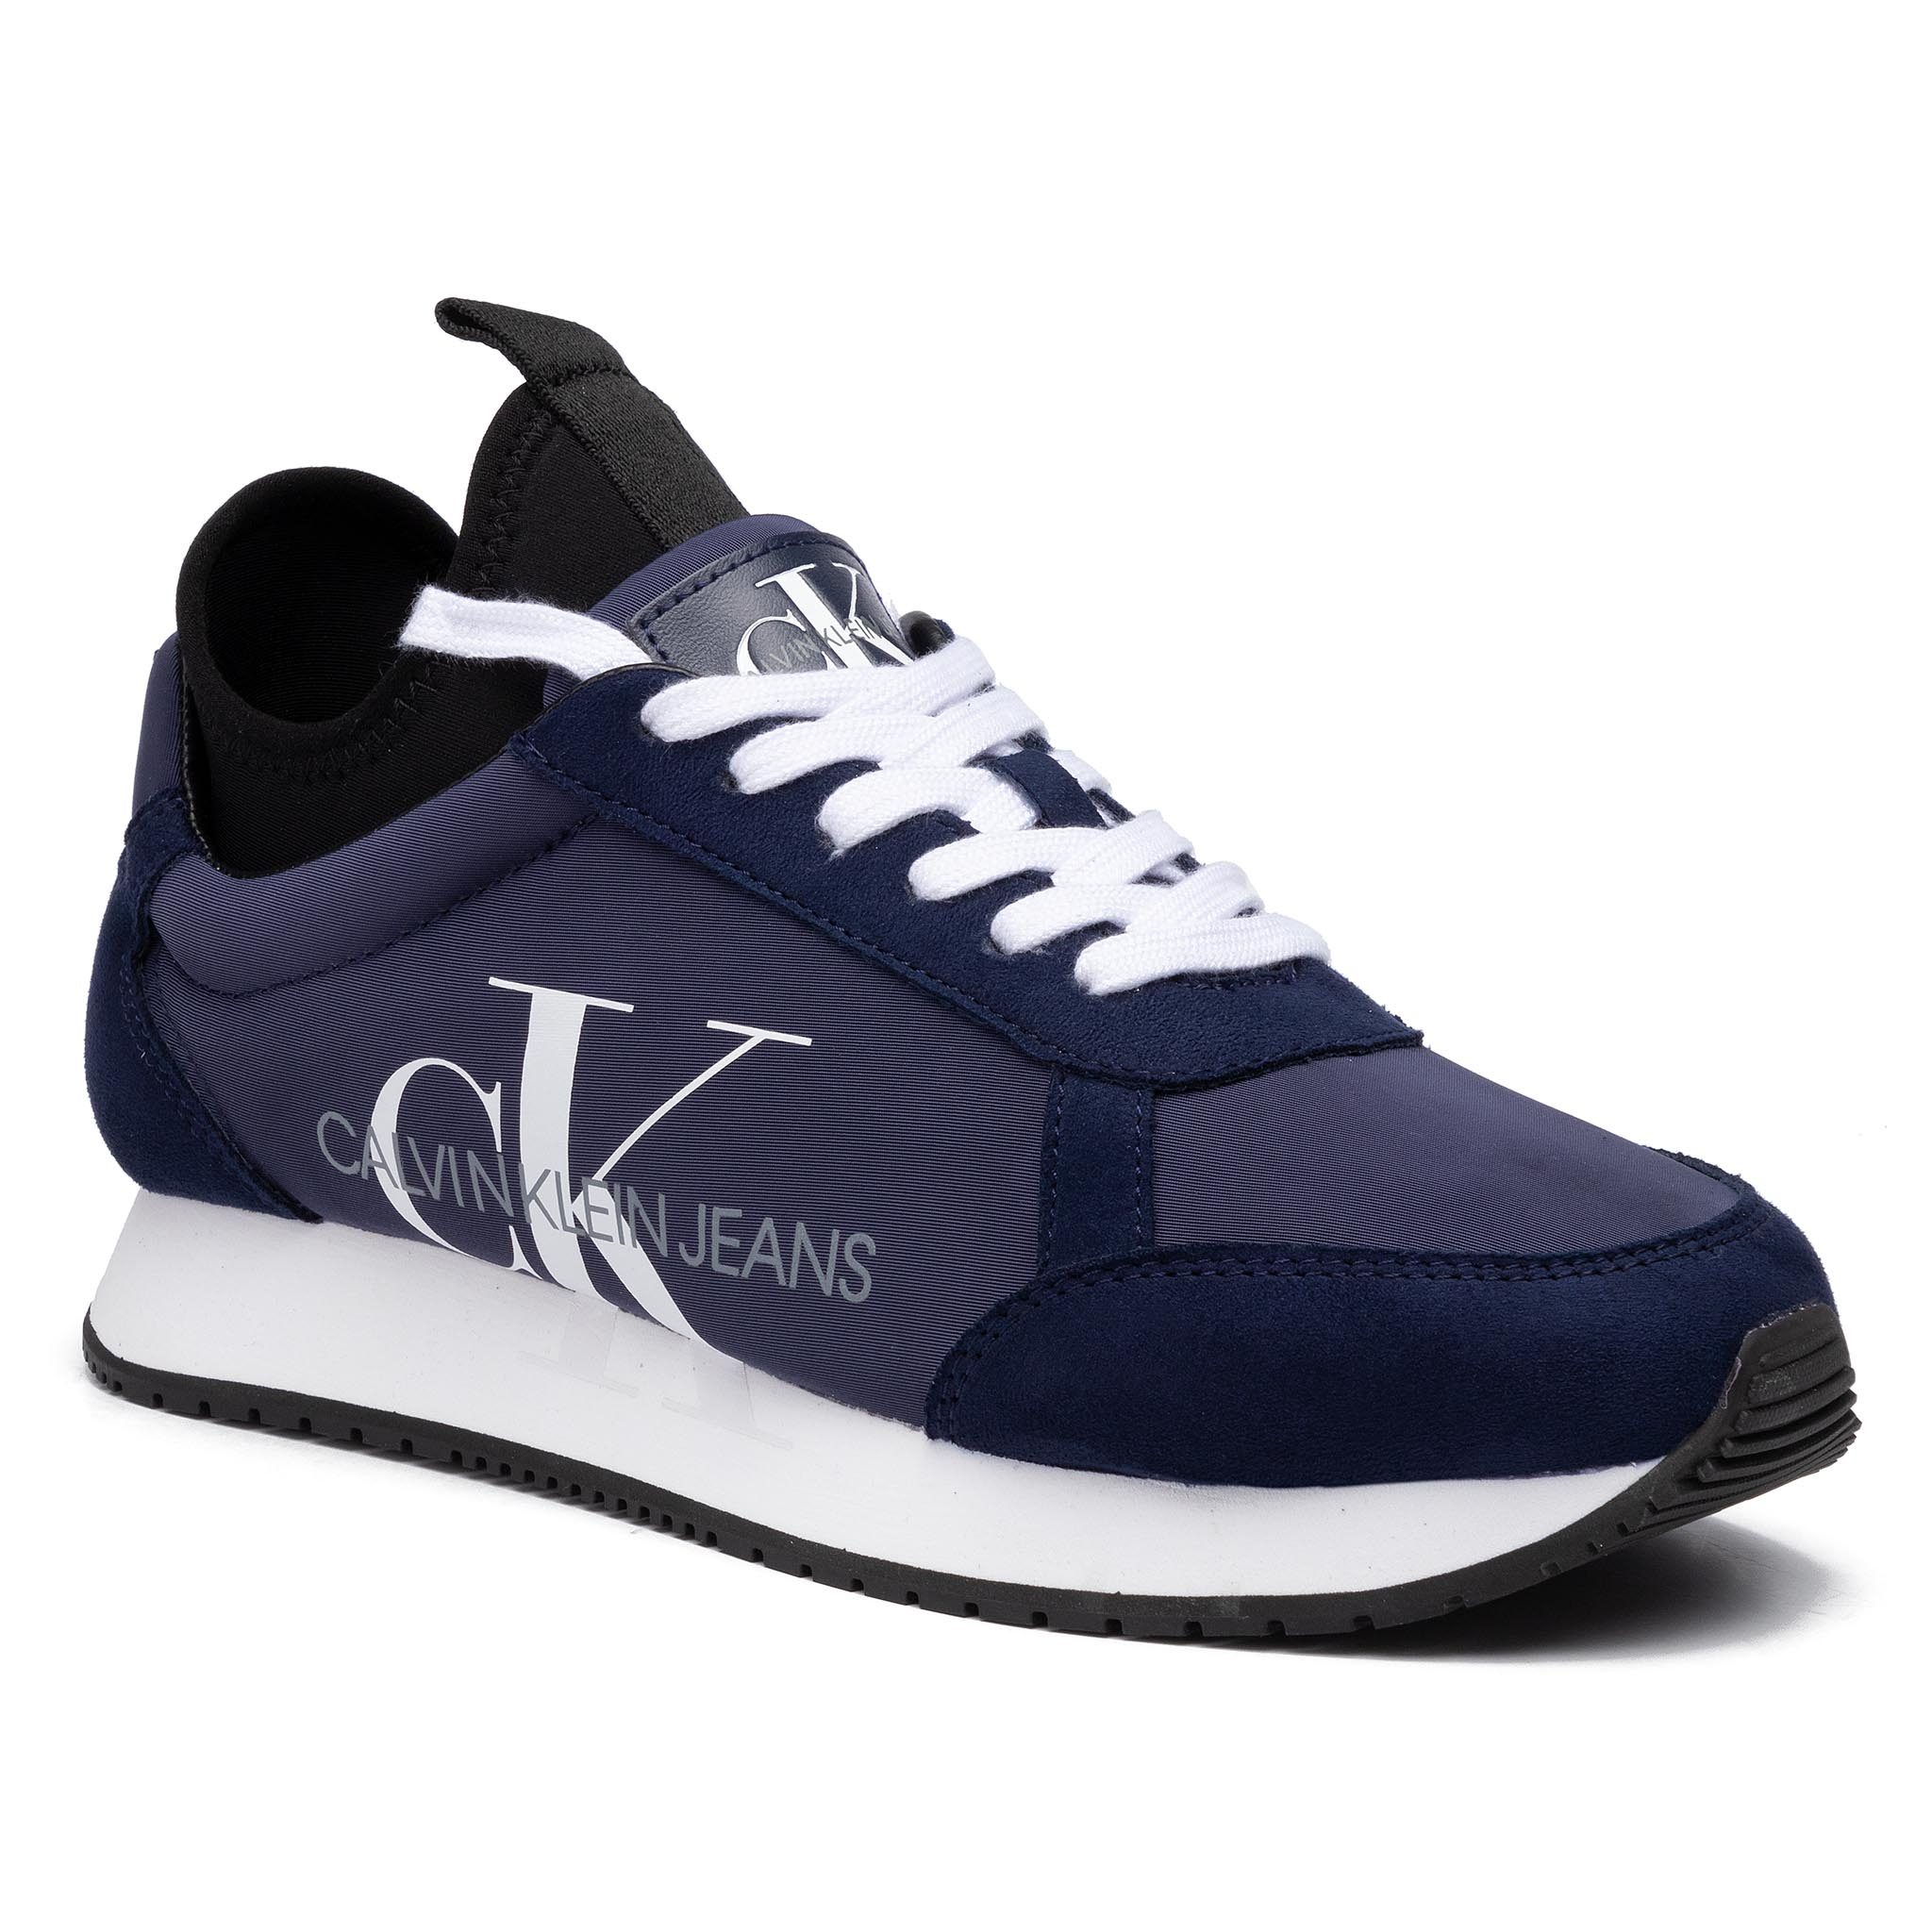 Image of Sneakers CALVIN KLEIN JEANS - Jemmy B4S0136 Medieval Blue